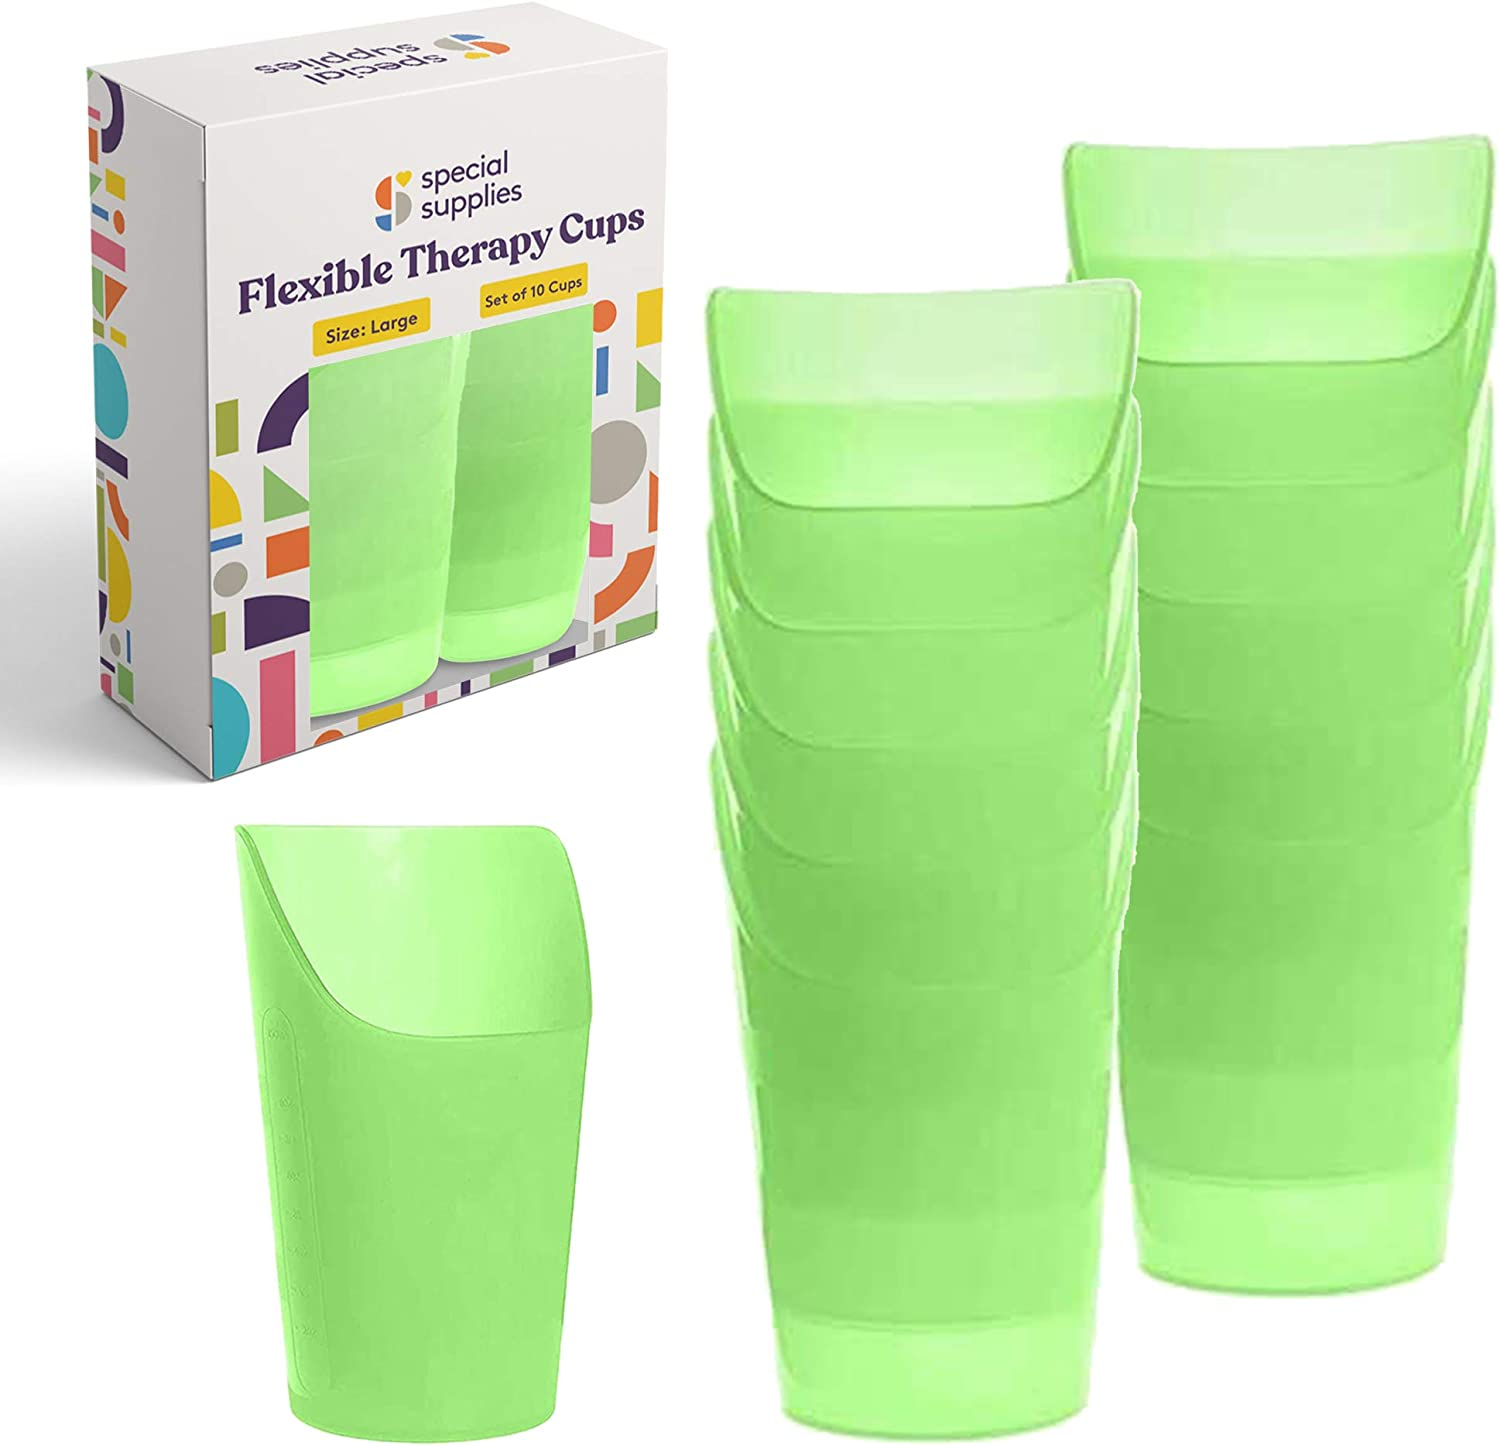 Special Supplies Pack of 10 Large Flexible Drinking Cups with Nose Mold Cutout for Physical Therapy, Recovery, and Rehabilitation, BPA-Free Drink Tumblers, Kids and Adults, 10 oz.